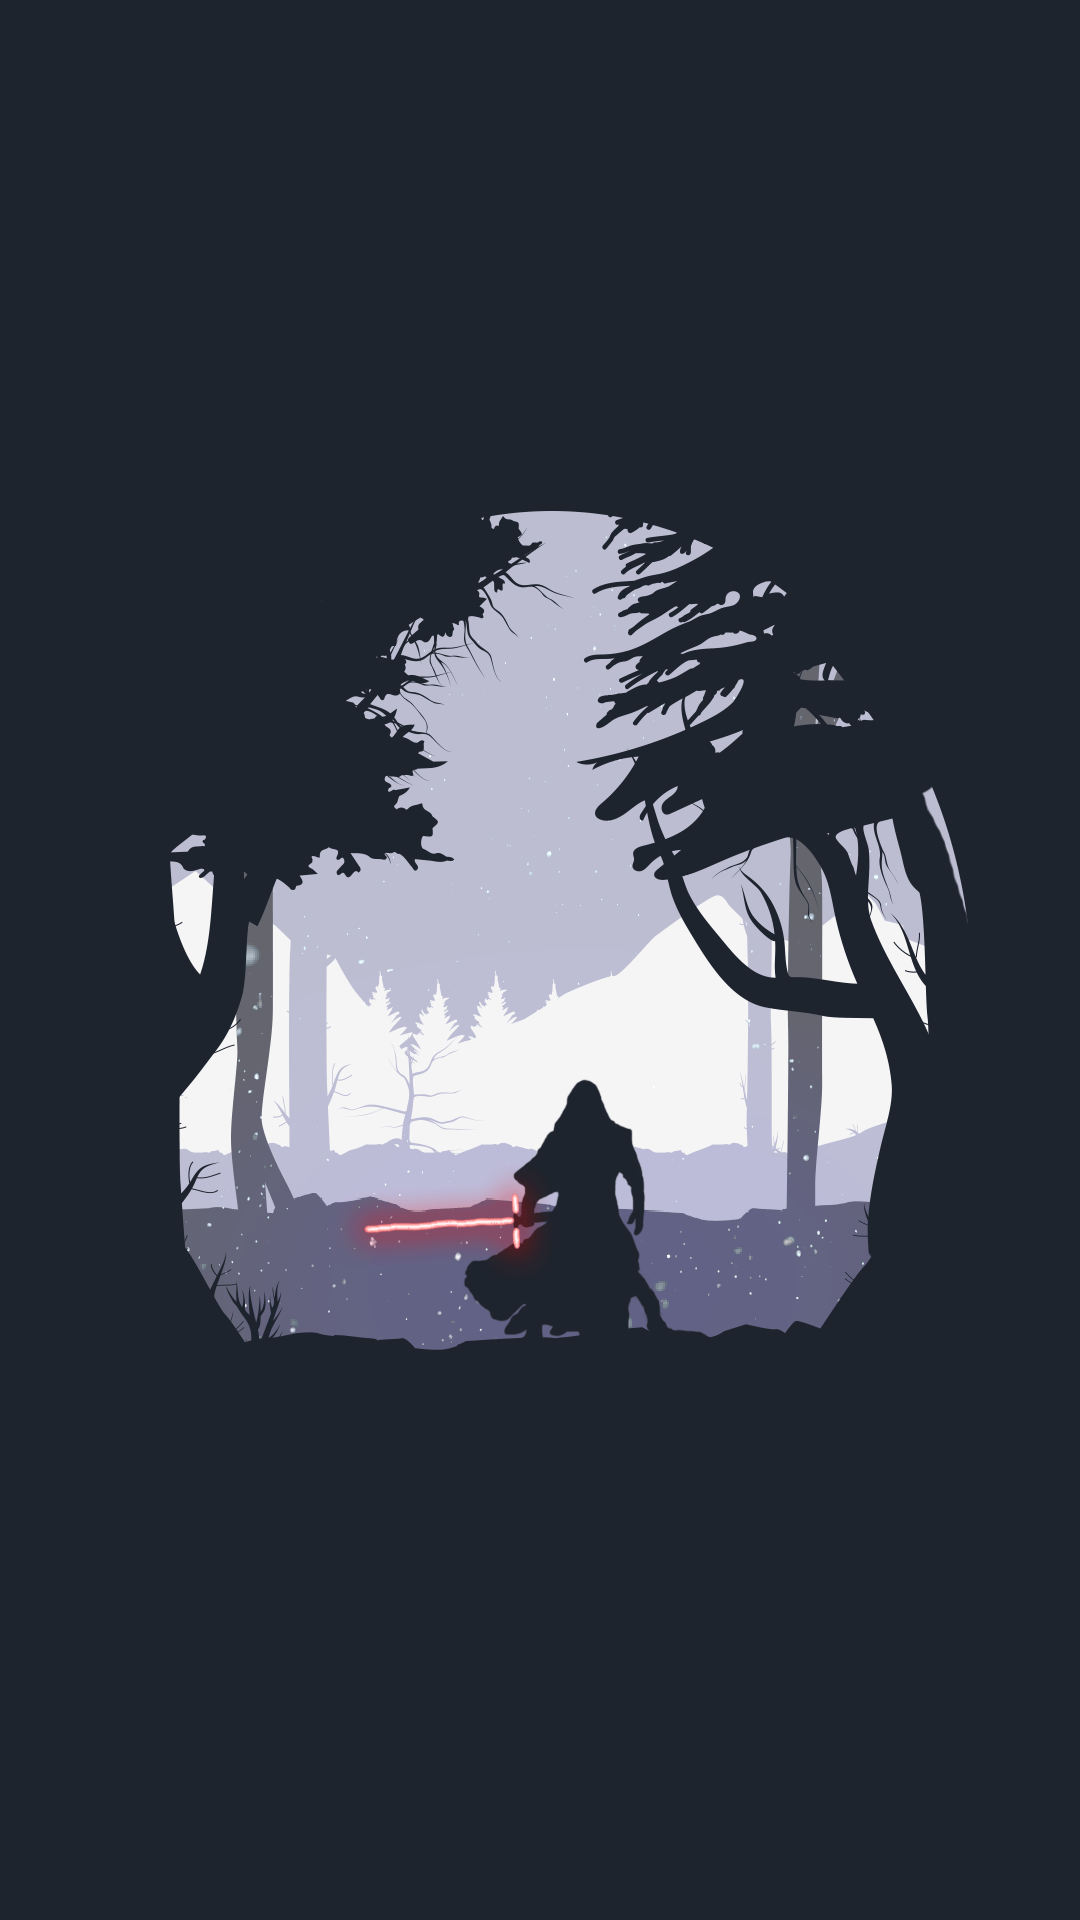 Minimalist Star Wars Iphone Wallpapers Top Free Minimalist Star Wars Iphone Backgrounds Wallpaperaccess